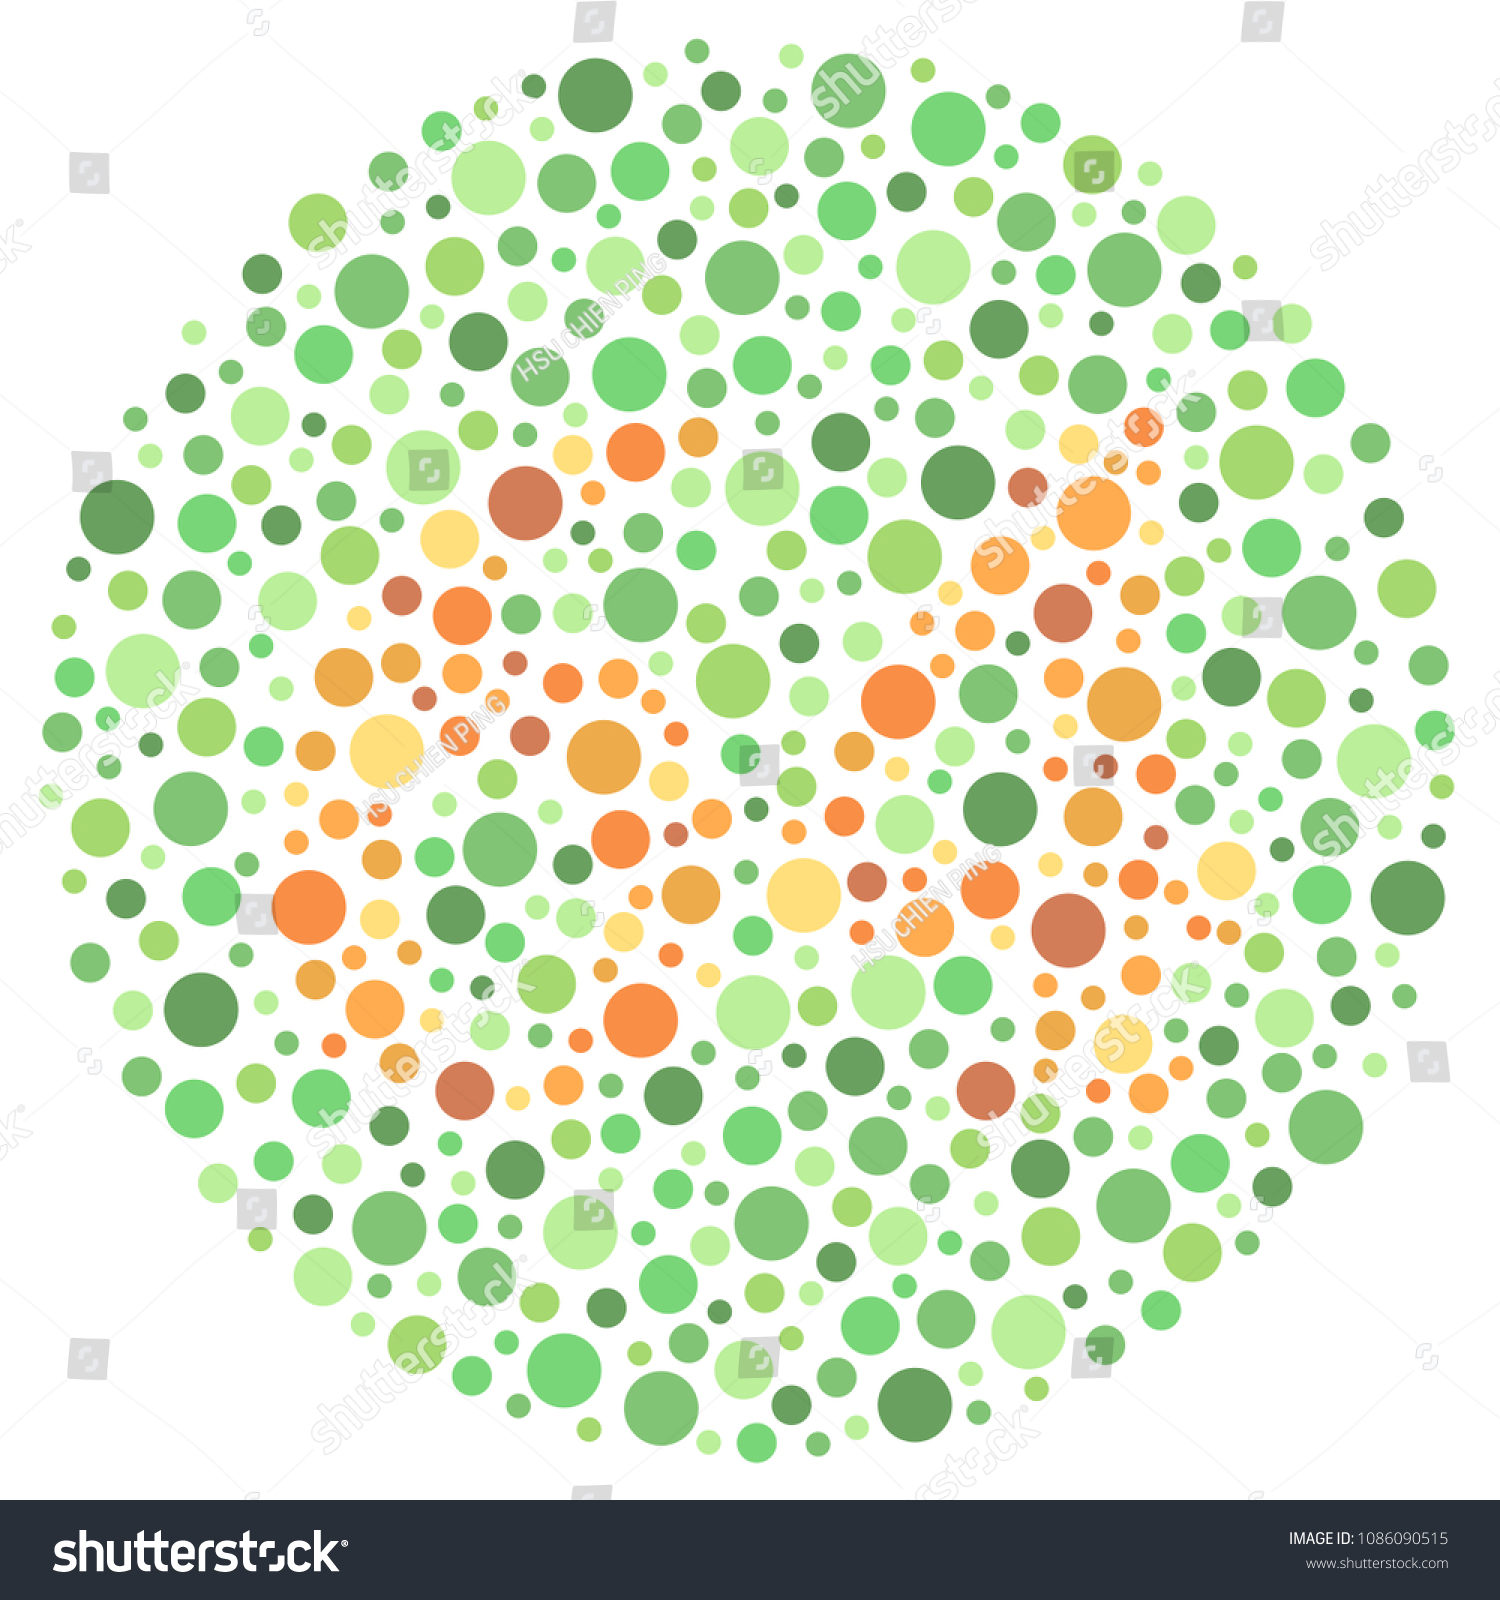 Ishihara Test Color Blind Test Stock Vector (2018) 1086090515 ...